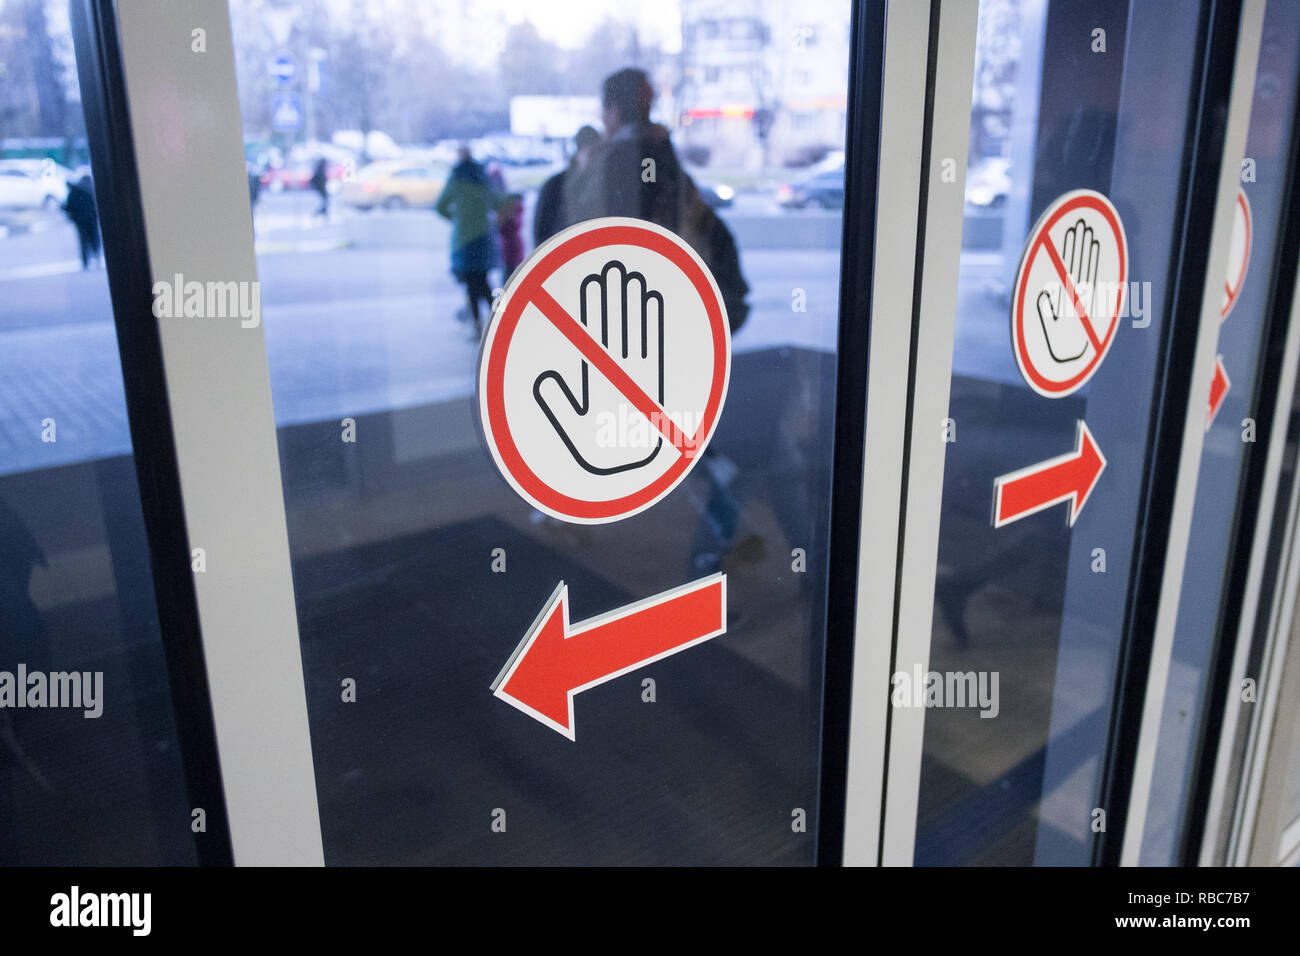 No entry on the door of a shop - Stock Image